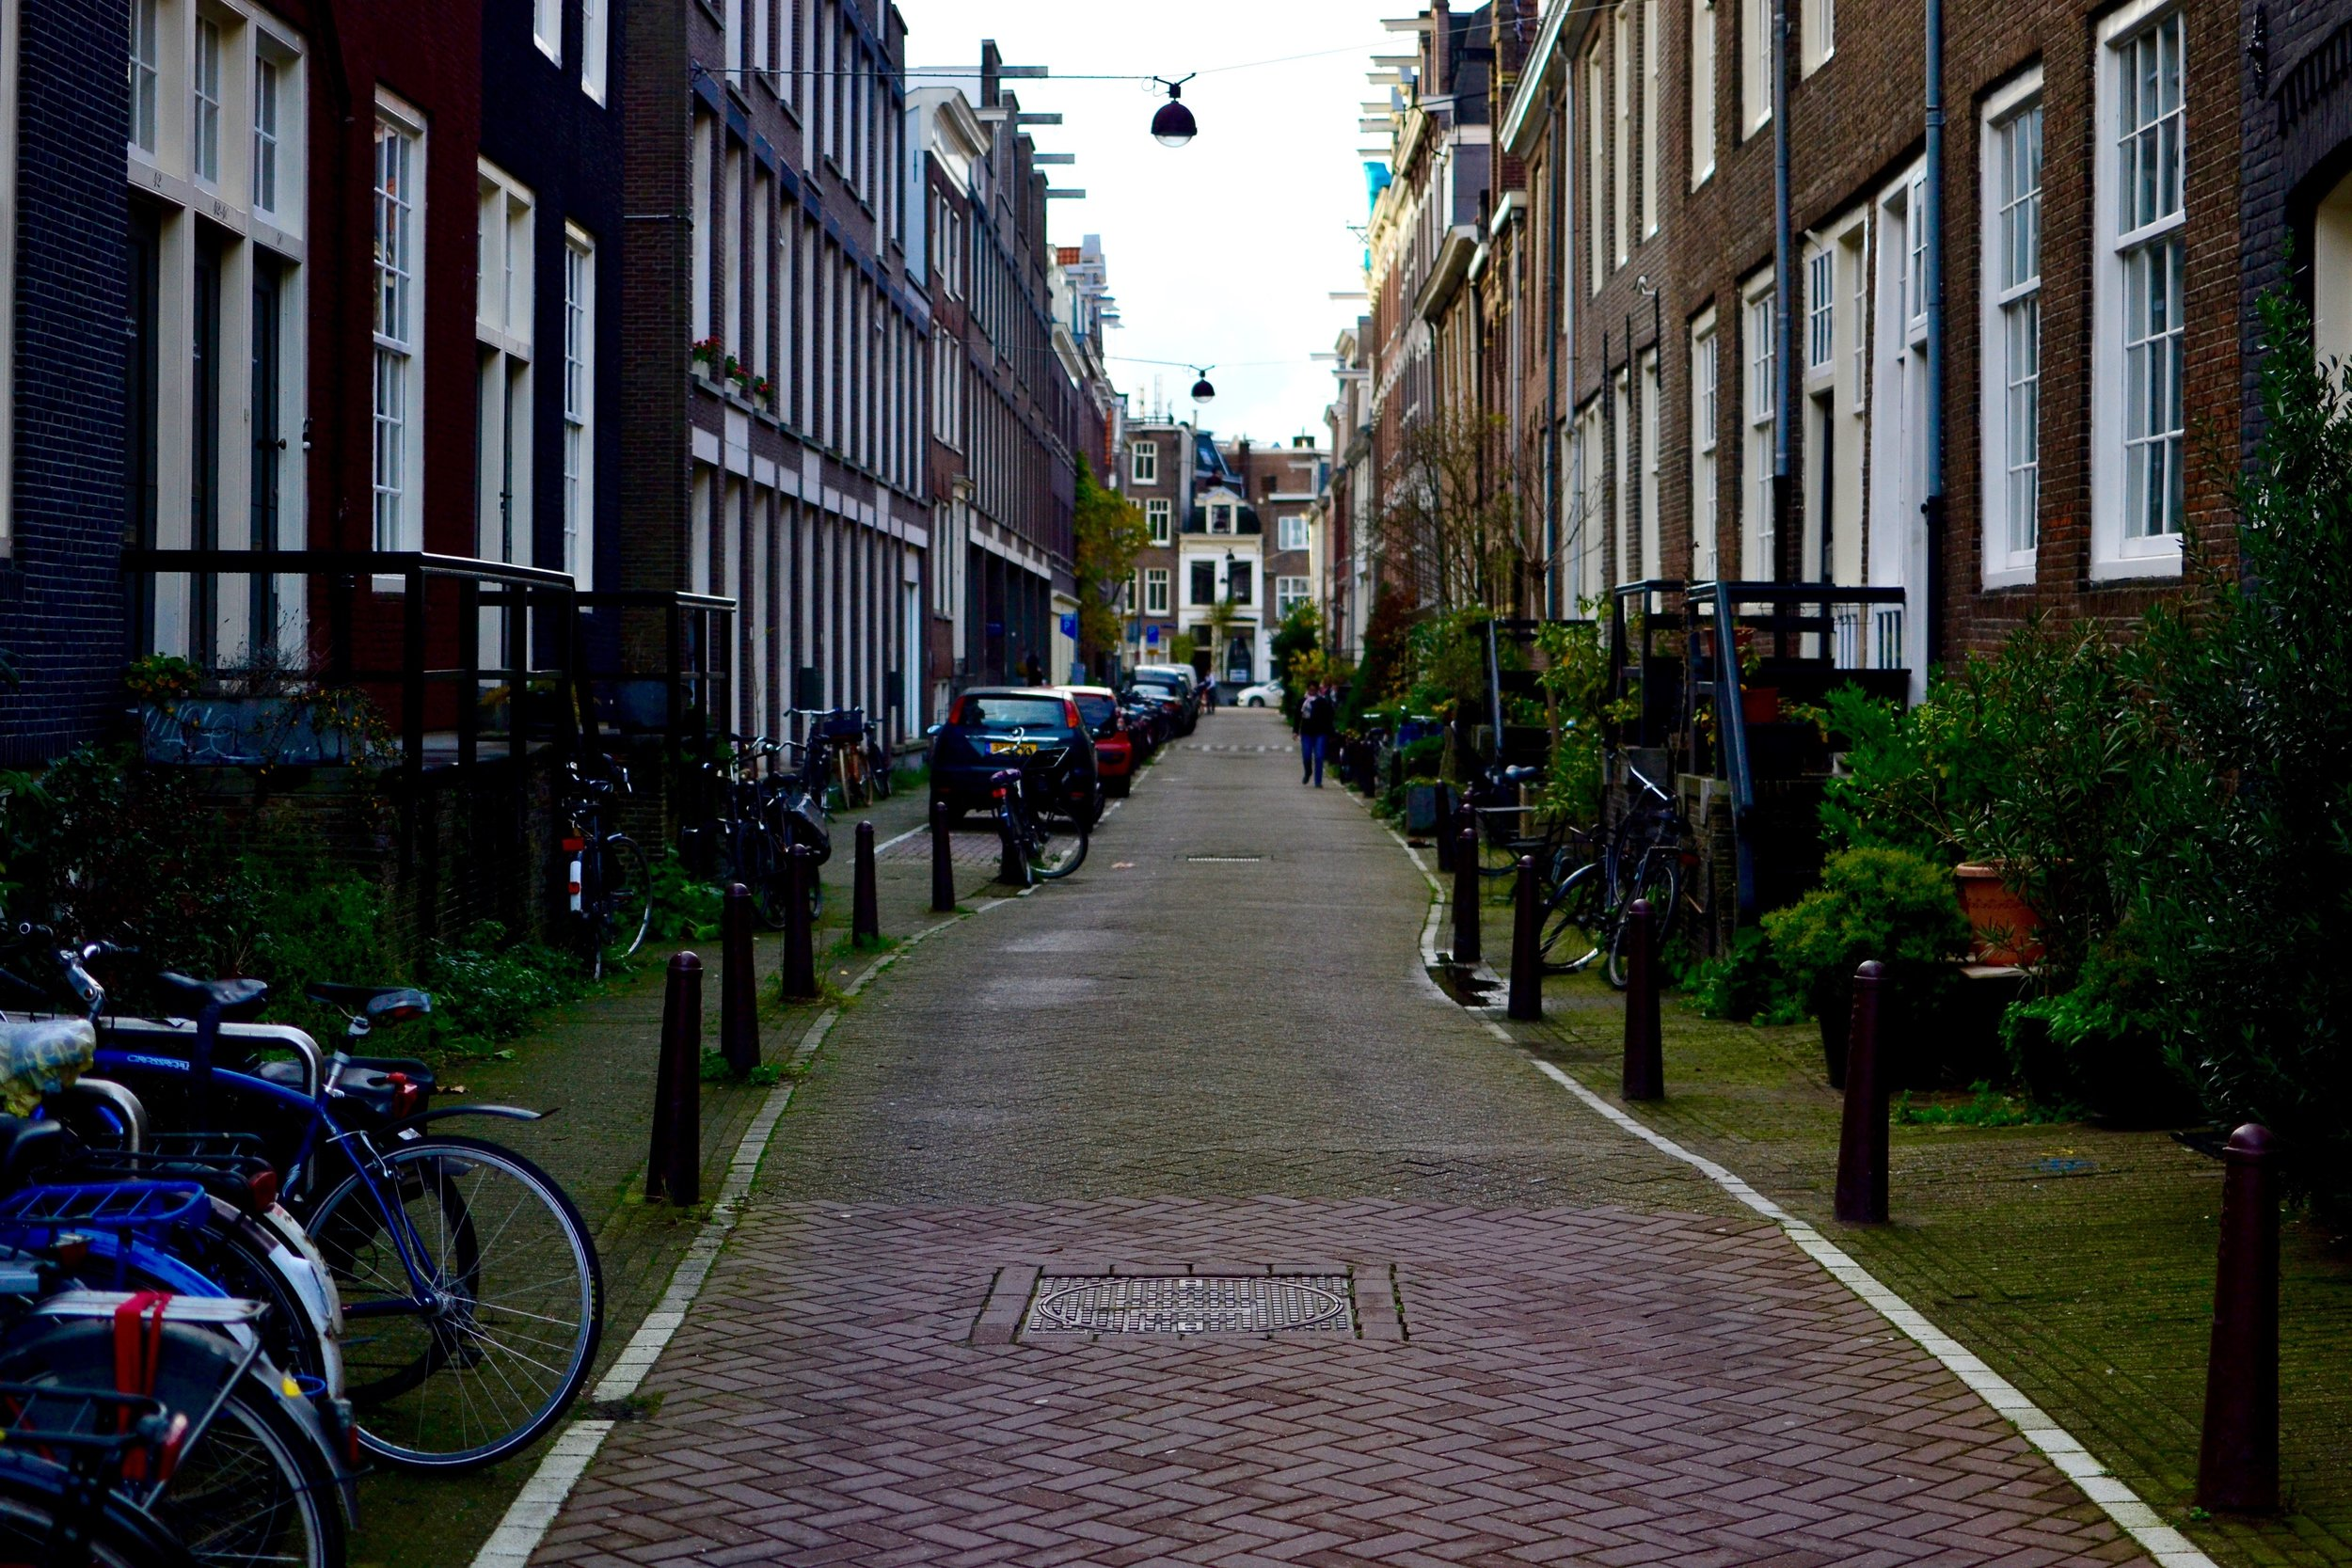 Photo taken in Amsterdam, The Netherlands